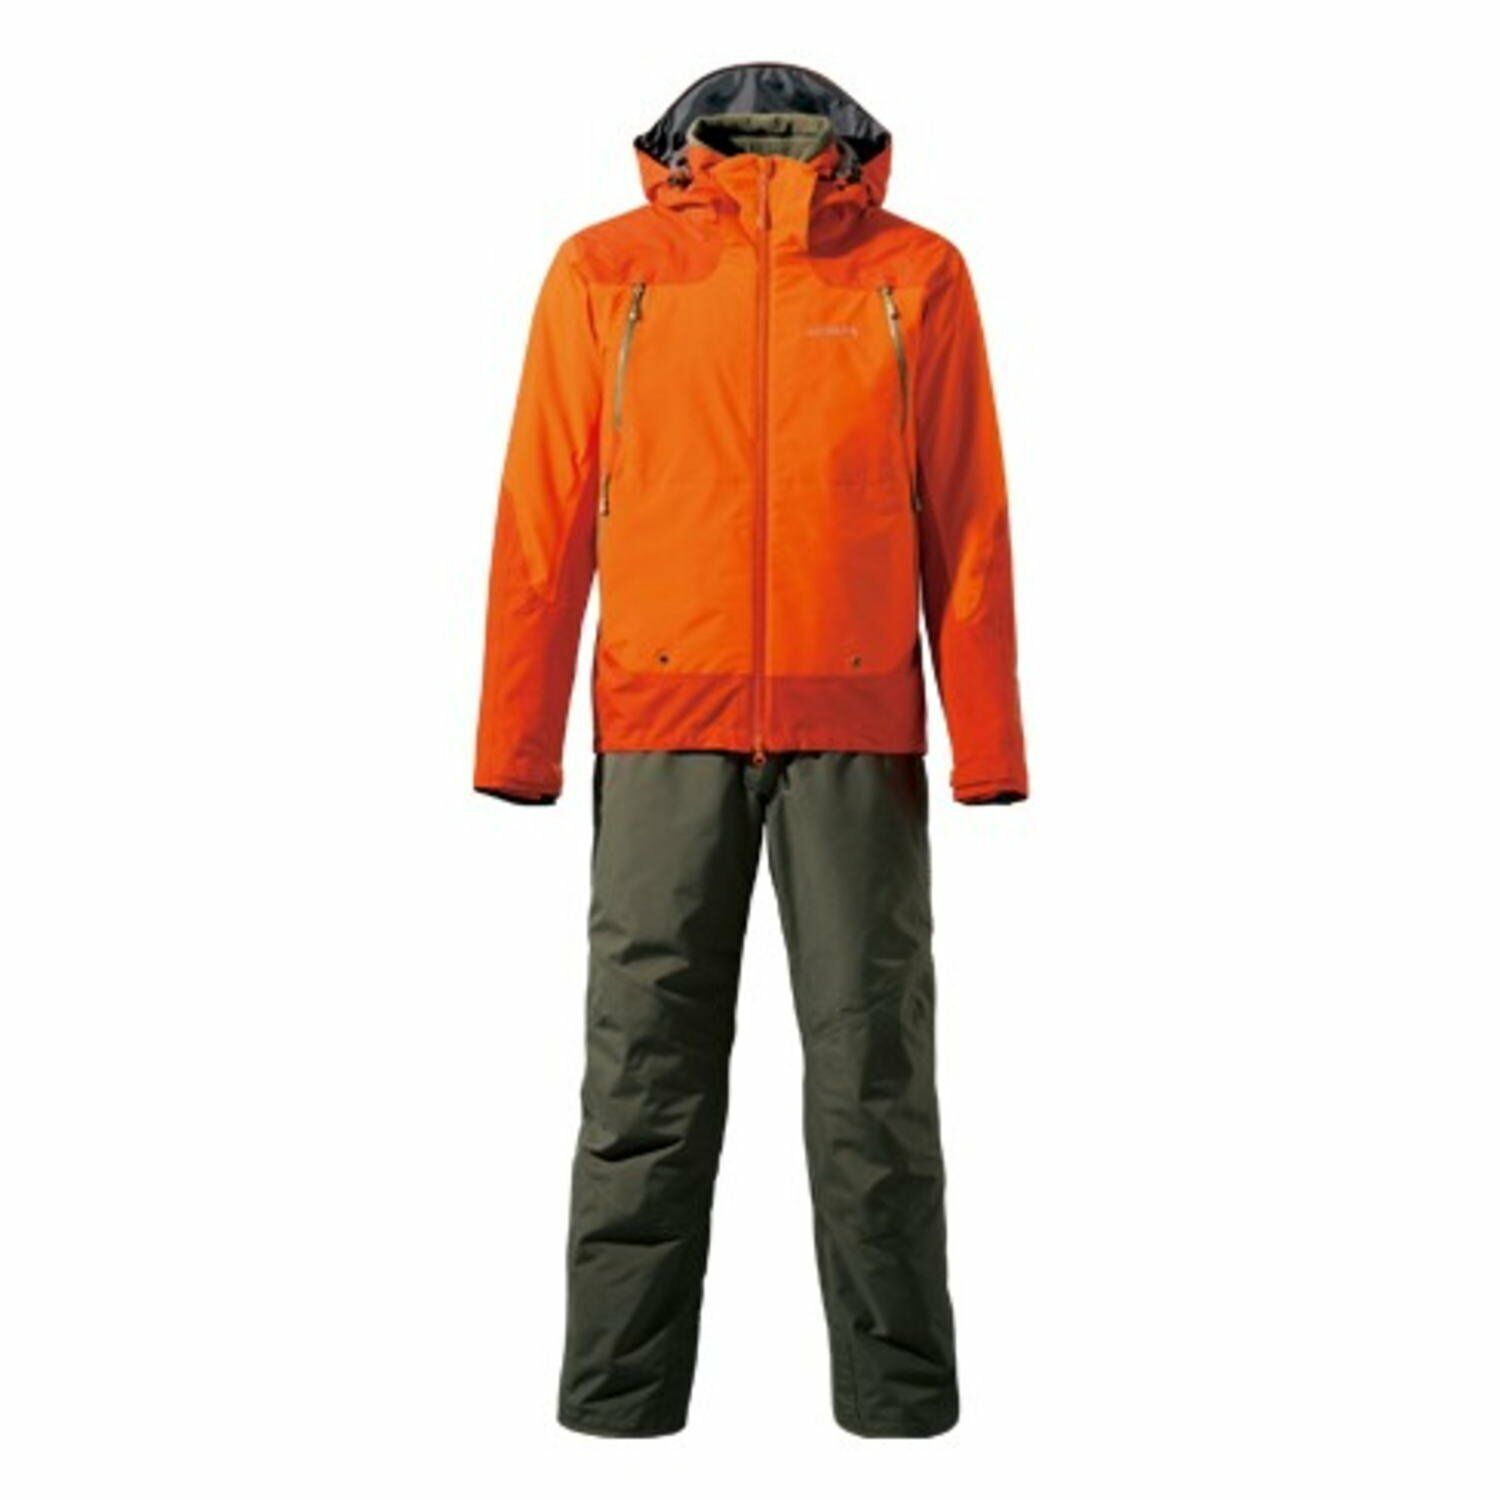 Shimano Japan GORE-TEX master warm suit RB-014M Warm cloth cloth cloth Orange Warm cloth cb05c6